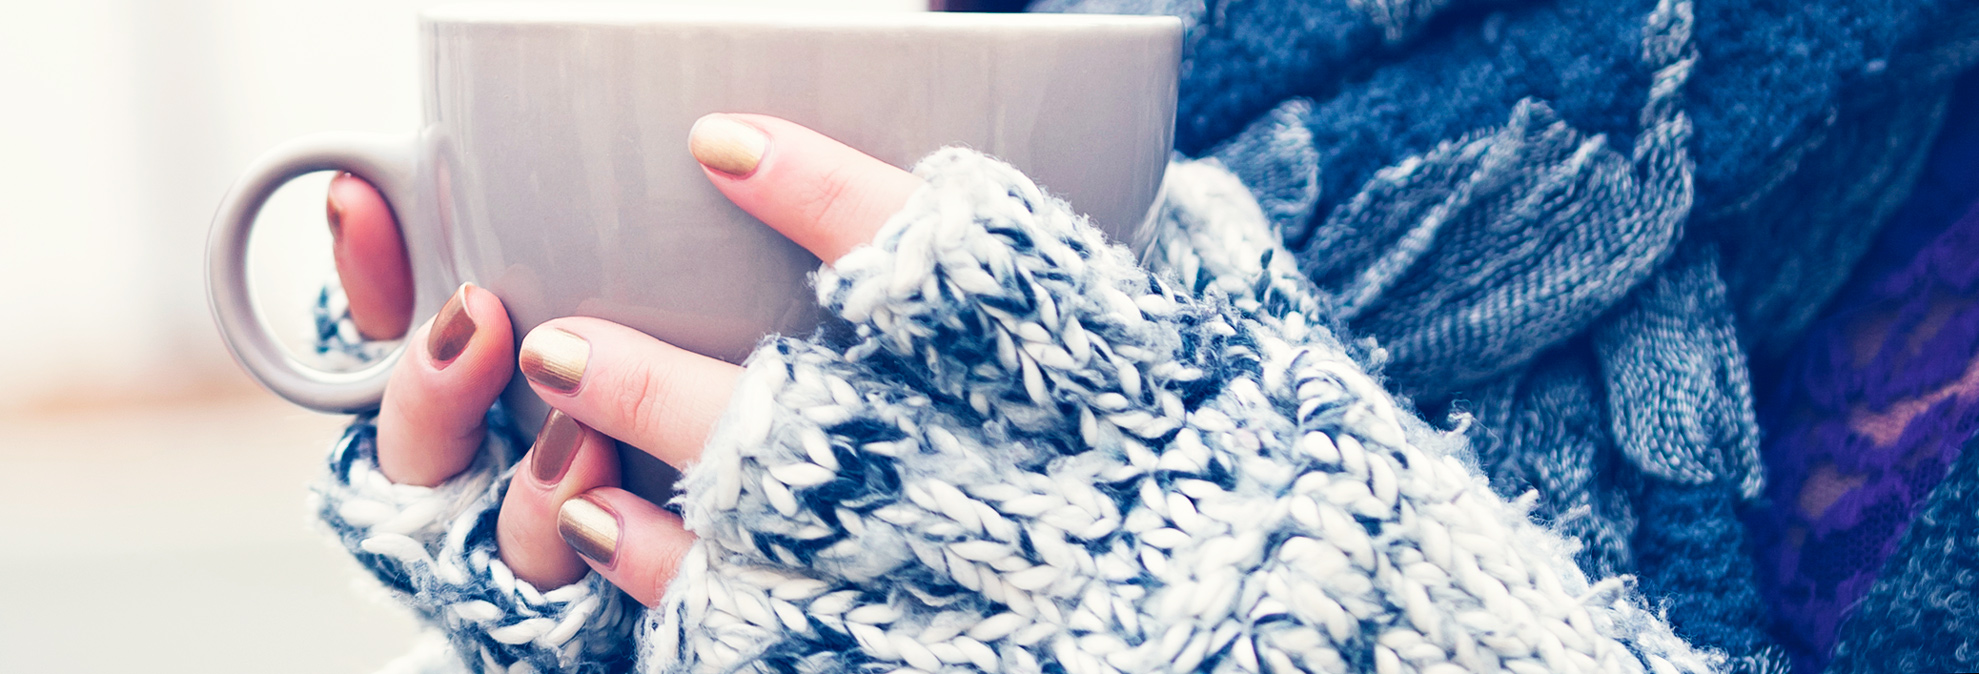 Coping With Cold Hands And Feet Consumer Reports